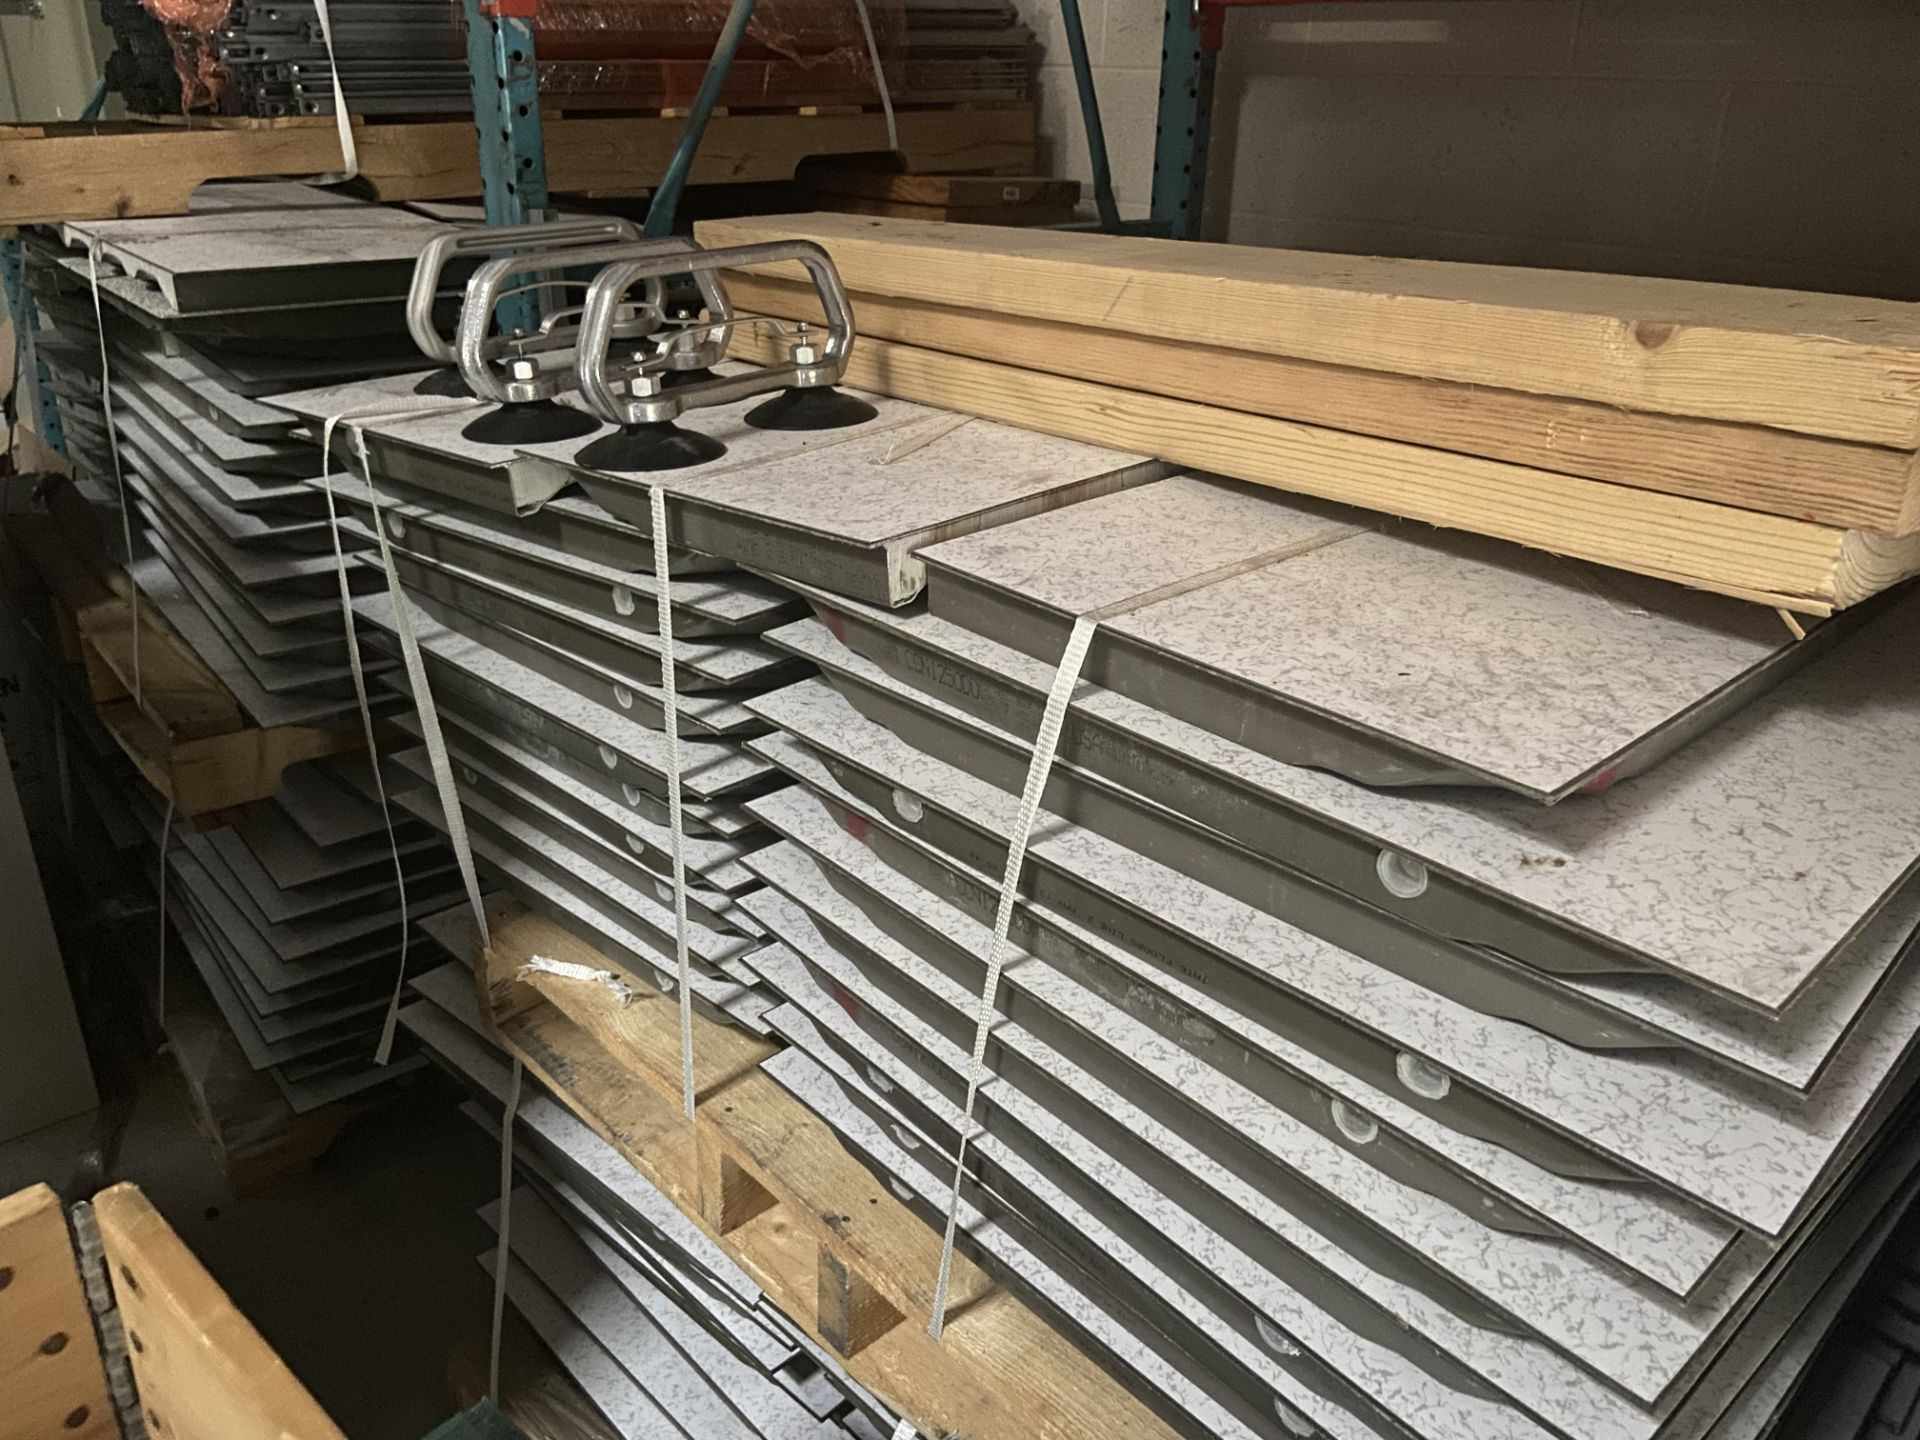 Raised Floor System Loading/Removal Fee: $120 - Image 2 of 4